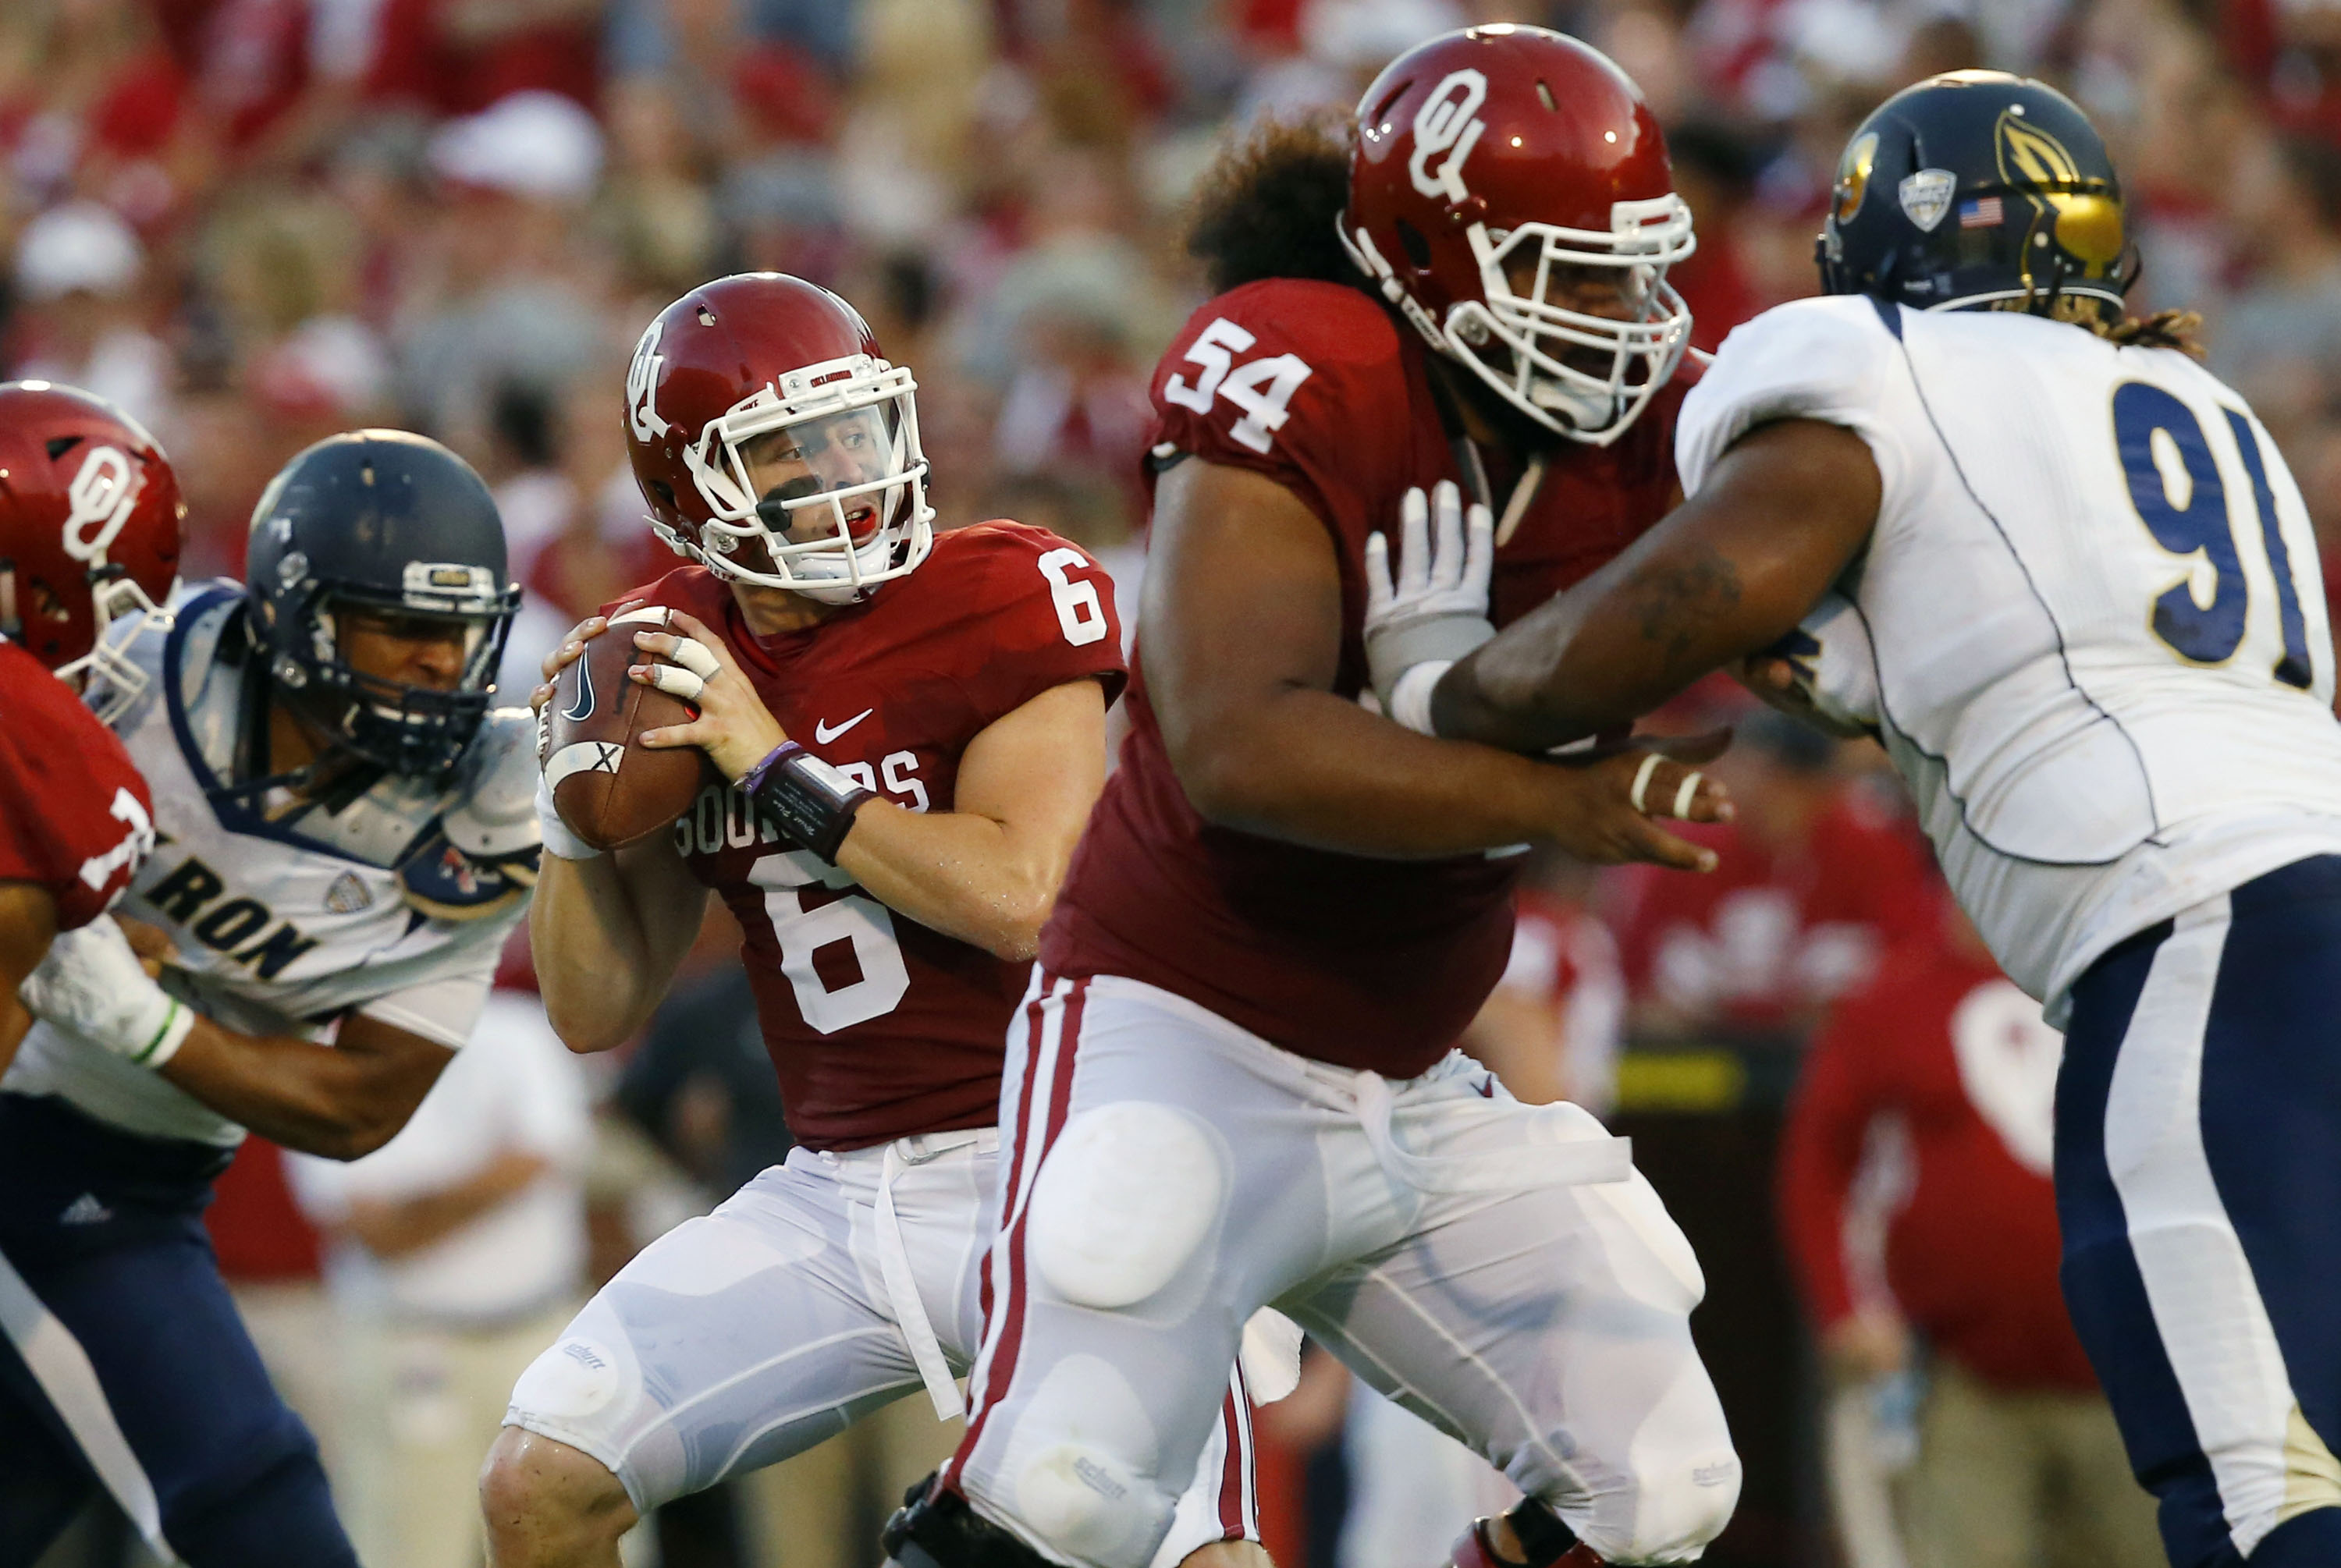 Oklahoma quarterback Baker Mayfield (6) passes under pressure in the second quarter of an NCAA college football game against Akron in Norman, Okla., Saturday, Sept. 5, 2015. At right are Oklahoma guard Nila Kasitati (54) and Akron defensive lineman Rodney